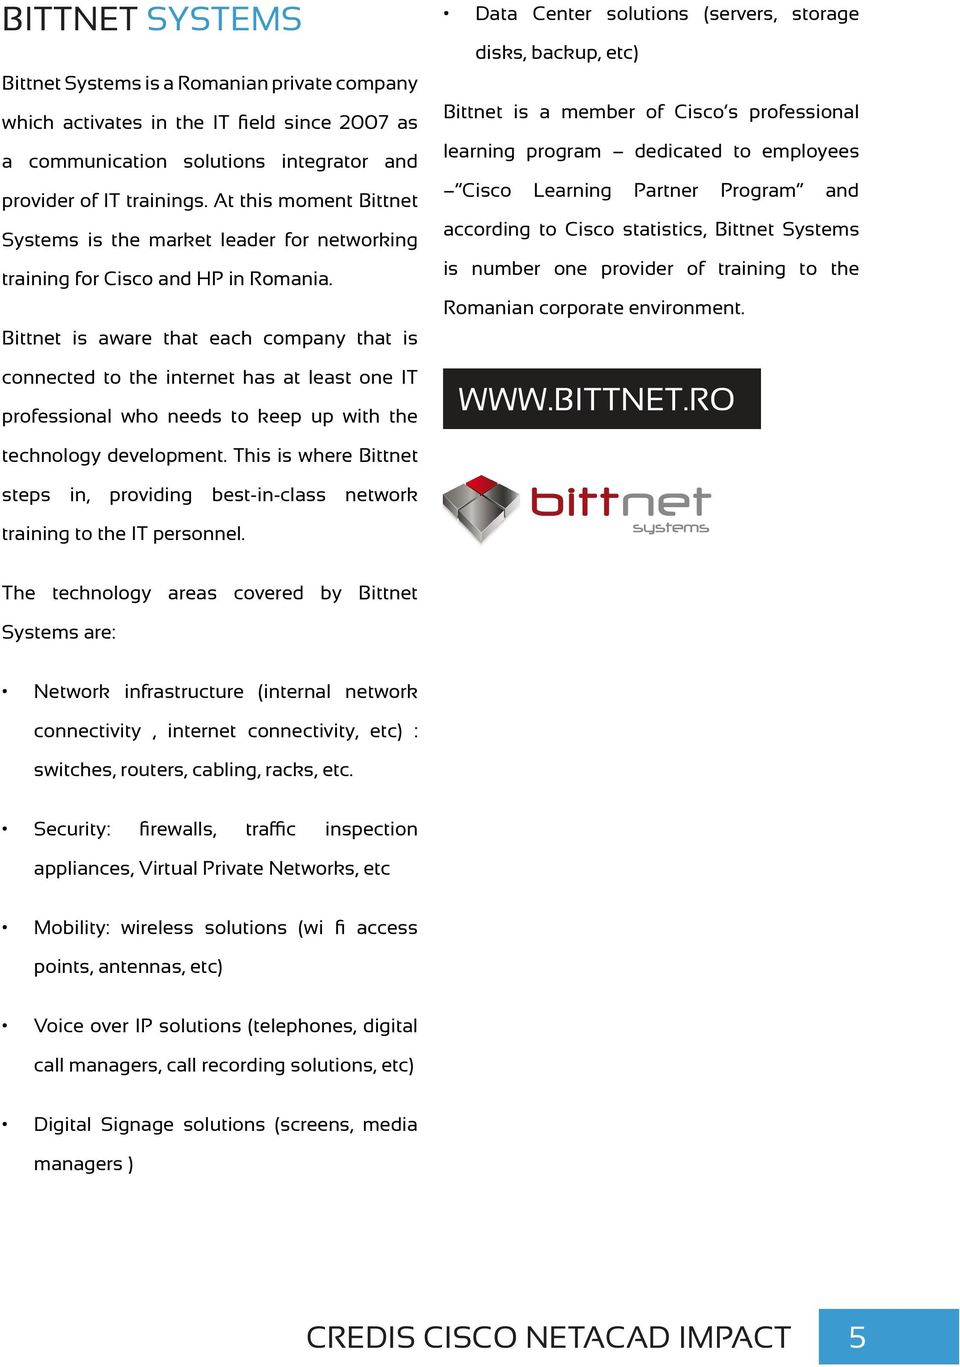 Bittnet is aware that each company that is connected to the internet has at least one IT professional who needs to keep up with the Data Center solutions (servers, storage disks, backup, etc) Bittnet